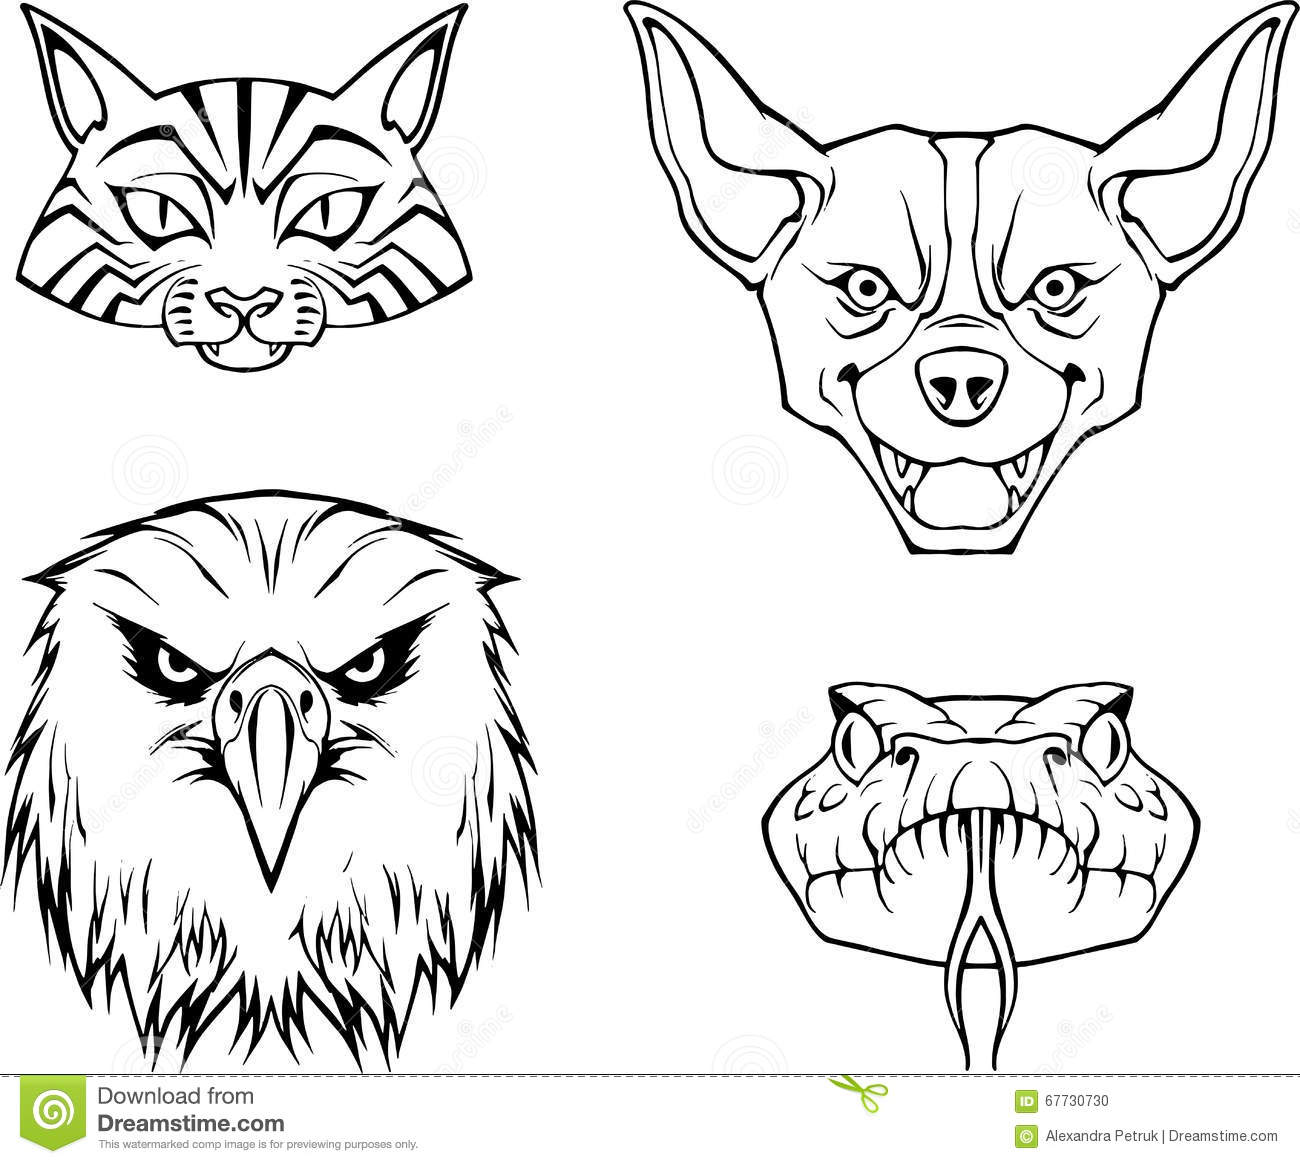 Line Drawing Of Animal Faces : Hand drawn illustration of four animal faces stock vector